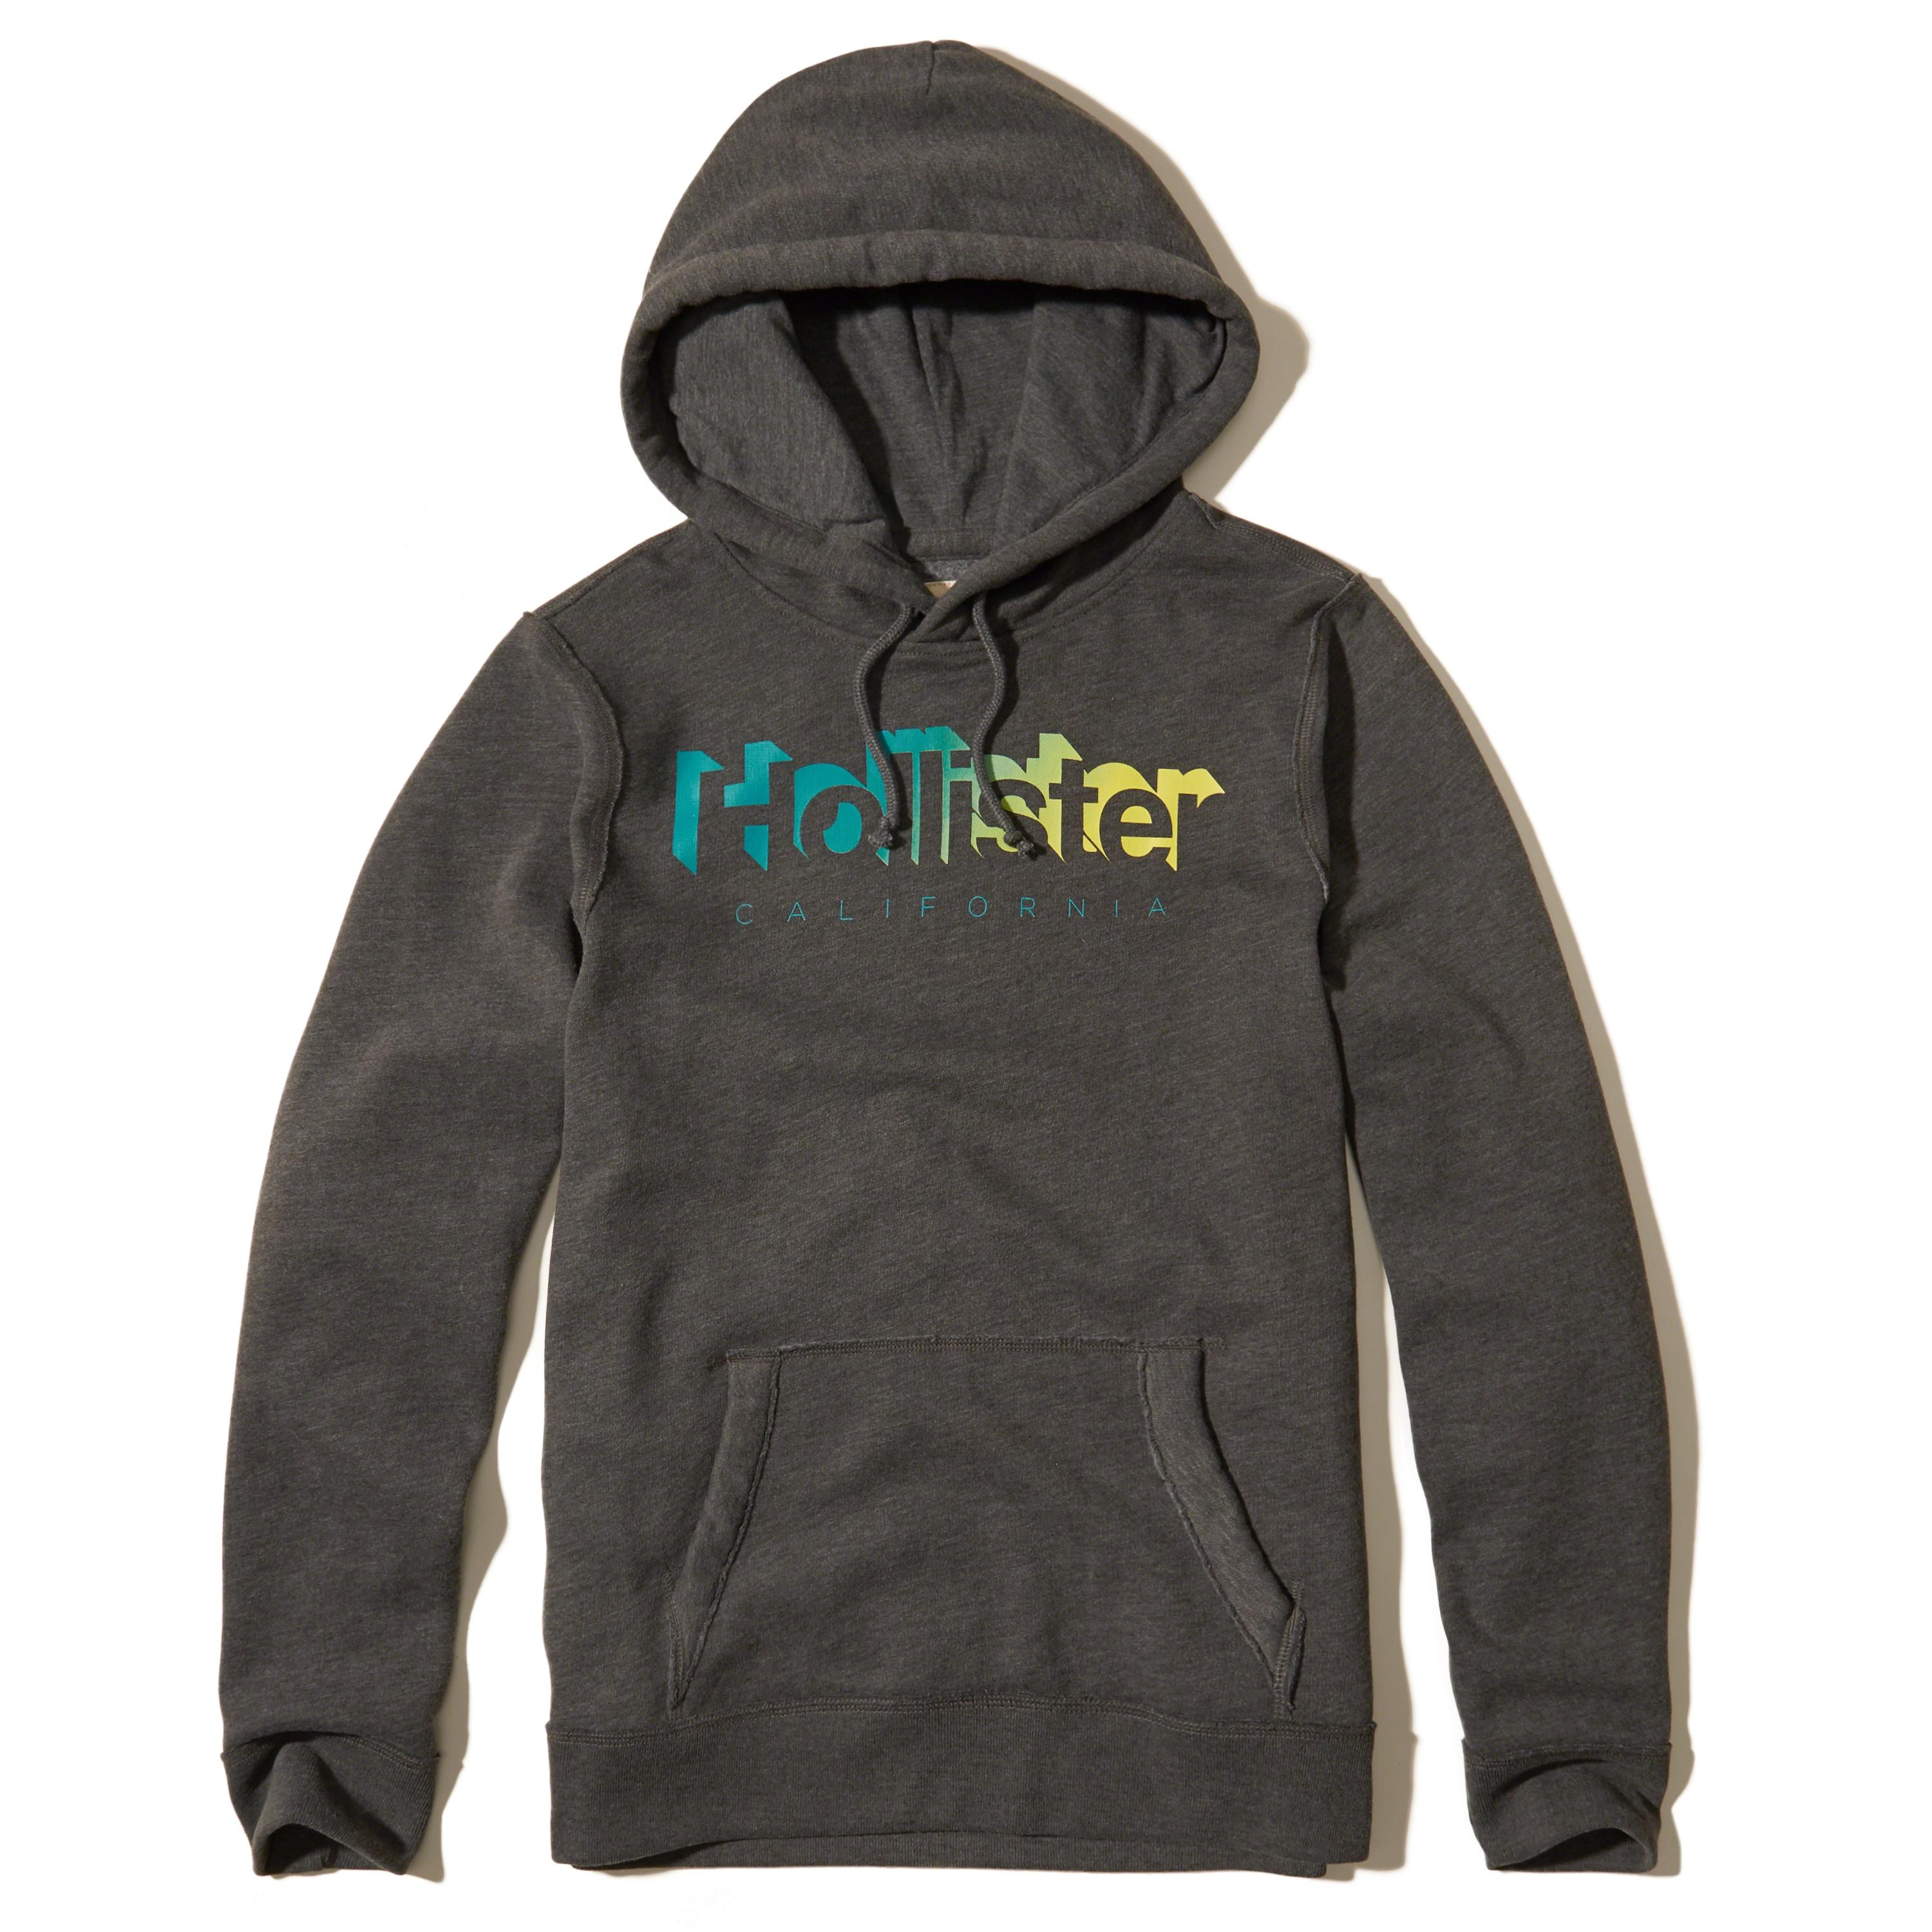 Hollister Printed Logo Graphic Hoodie in Gray for Men - Lyst